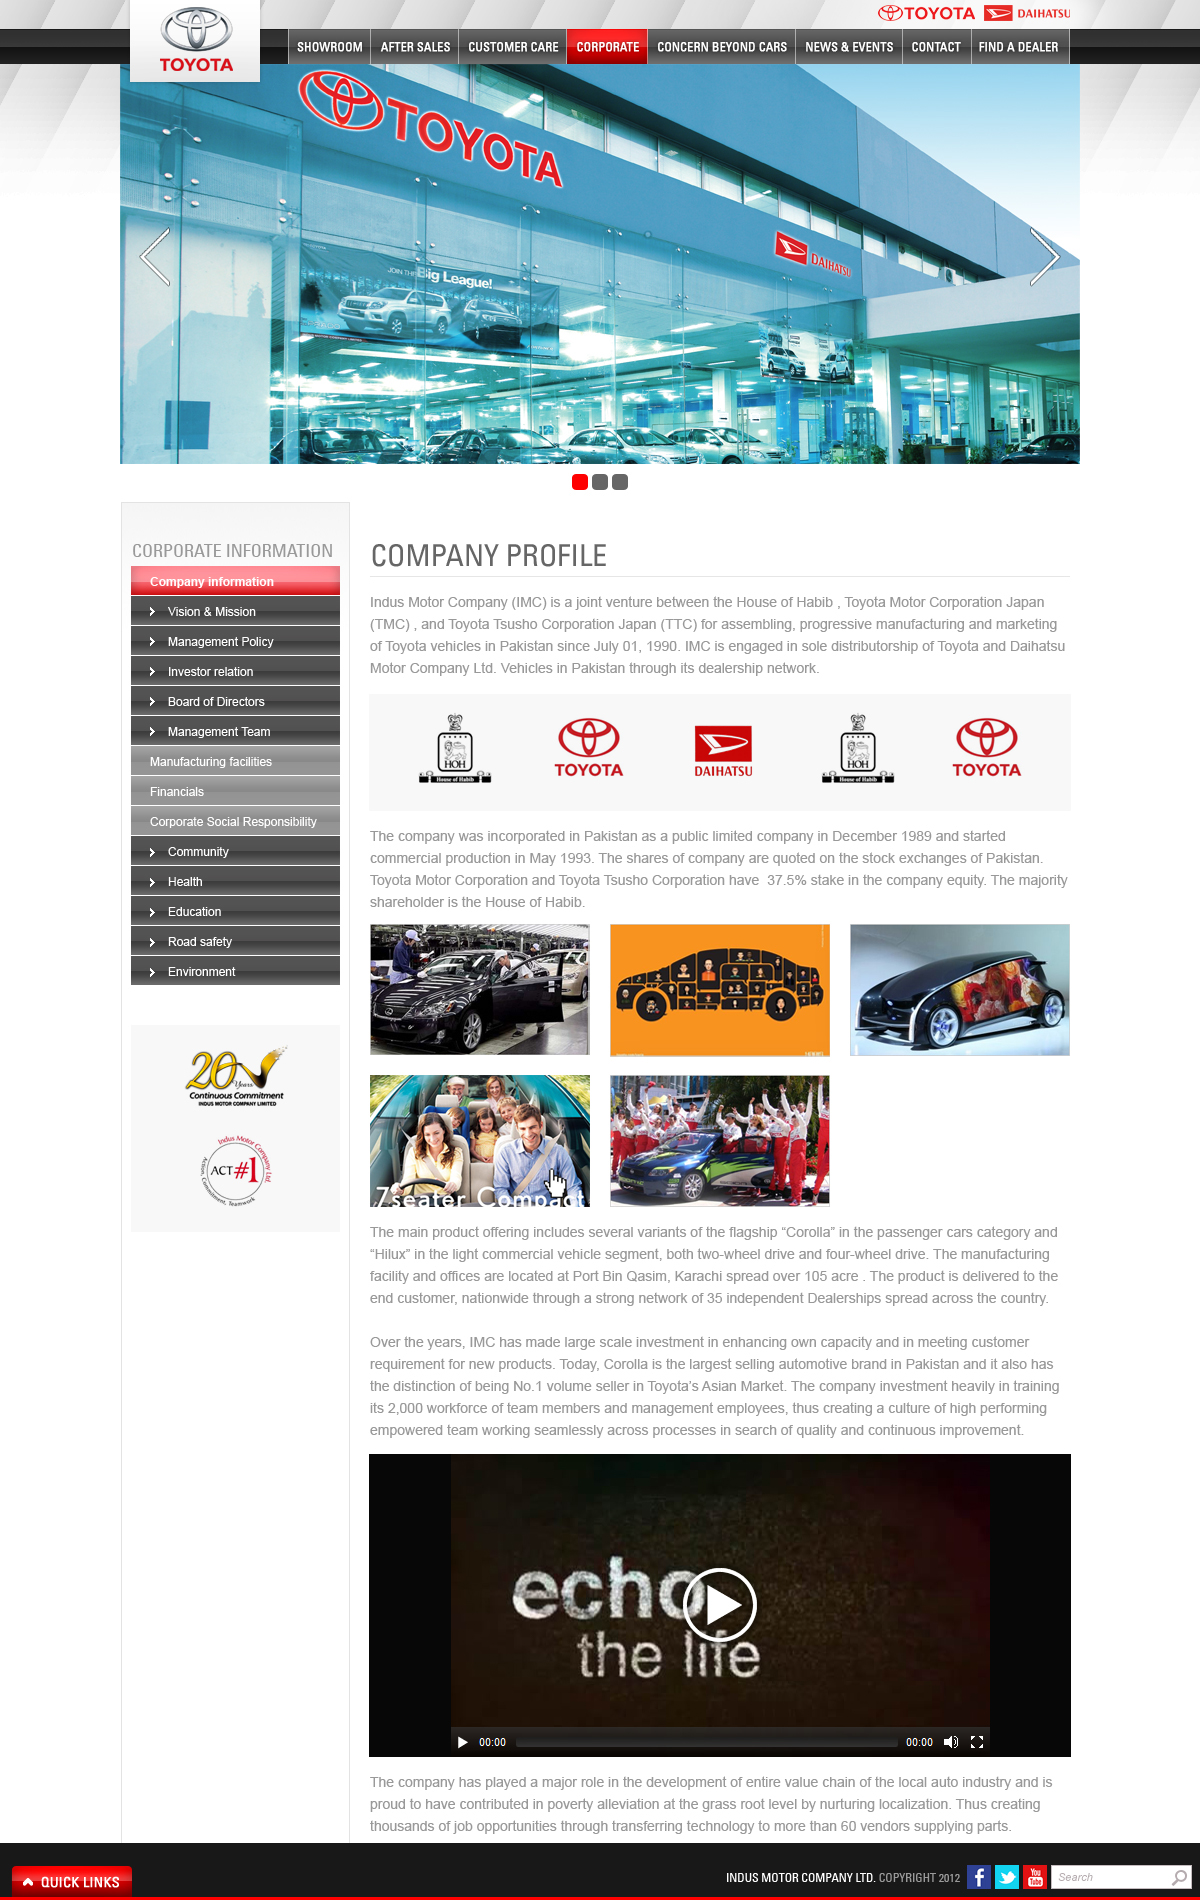 the market plan indus motor company limited Indus motor company limited was formed in accordance with the terms of a joint venture agreement concluded amongst house of habib, toyota motor corporation and toyota tsusho corporation for the purpose of assembling, manufacturing and marketing of toyota vehicles.